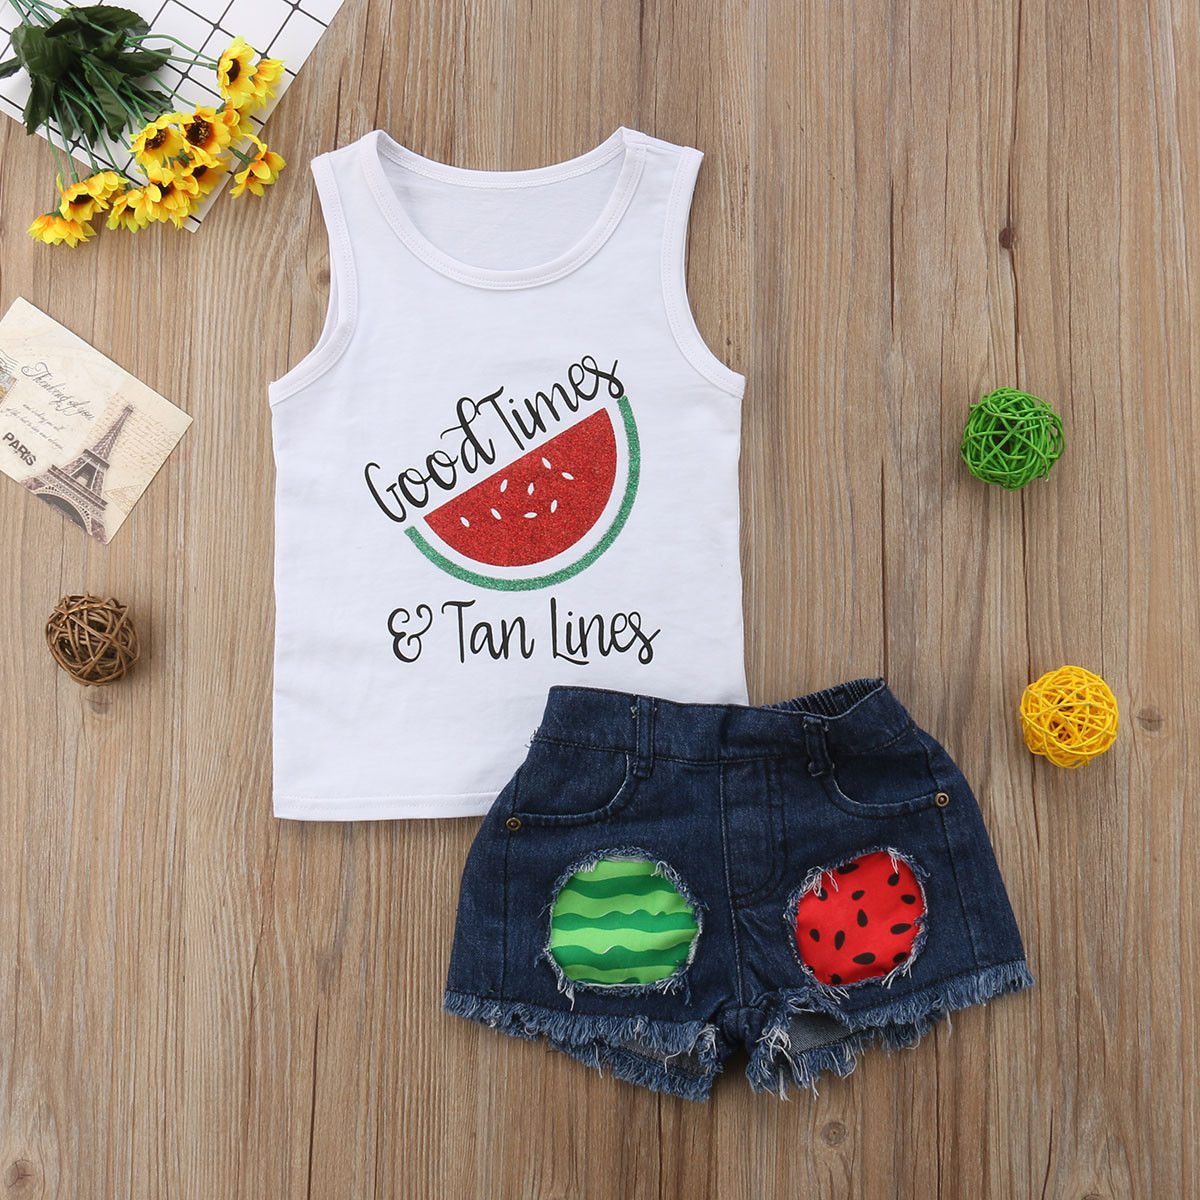 2020 Children Kids Baby Girl Clothes Set Summer Sleeveless Watermelon Vest Tops Shorts Ripped Jeans Girls Clothing Outfits 2